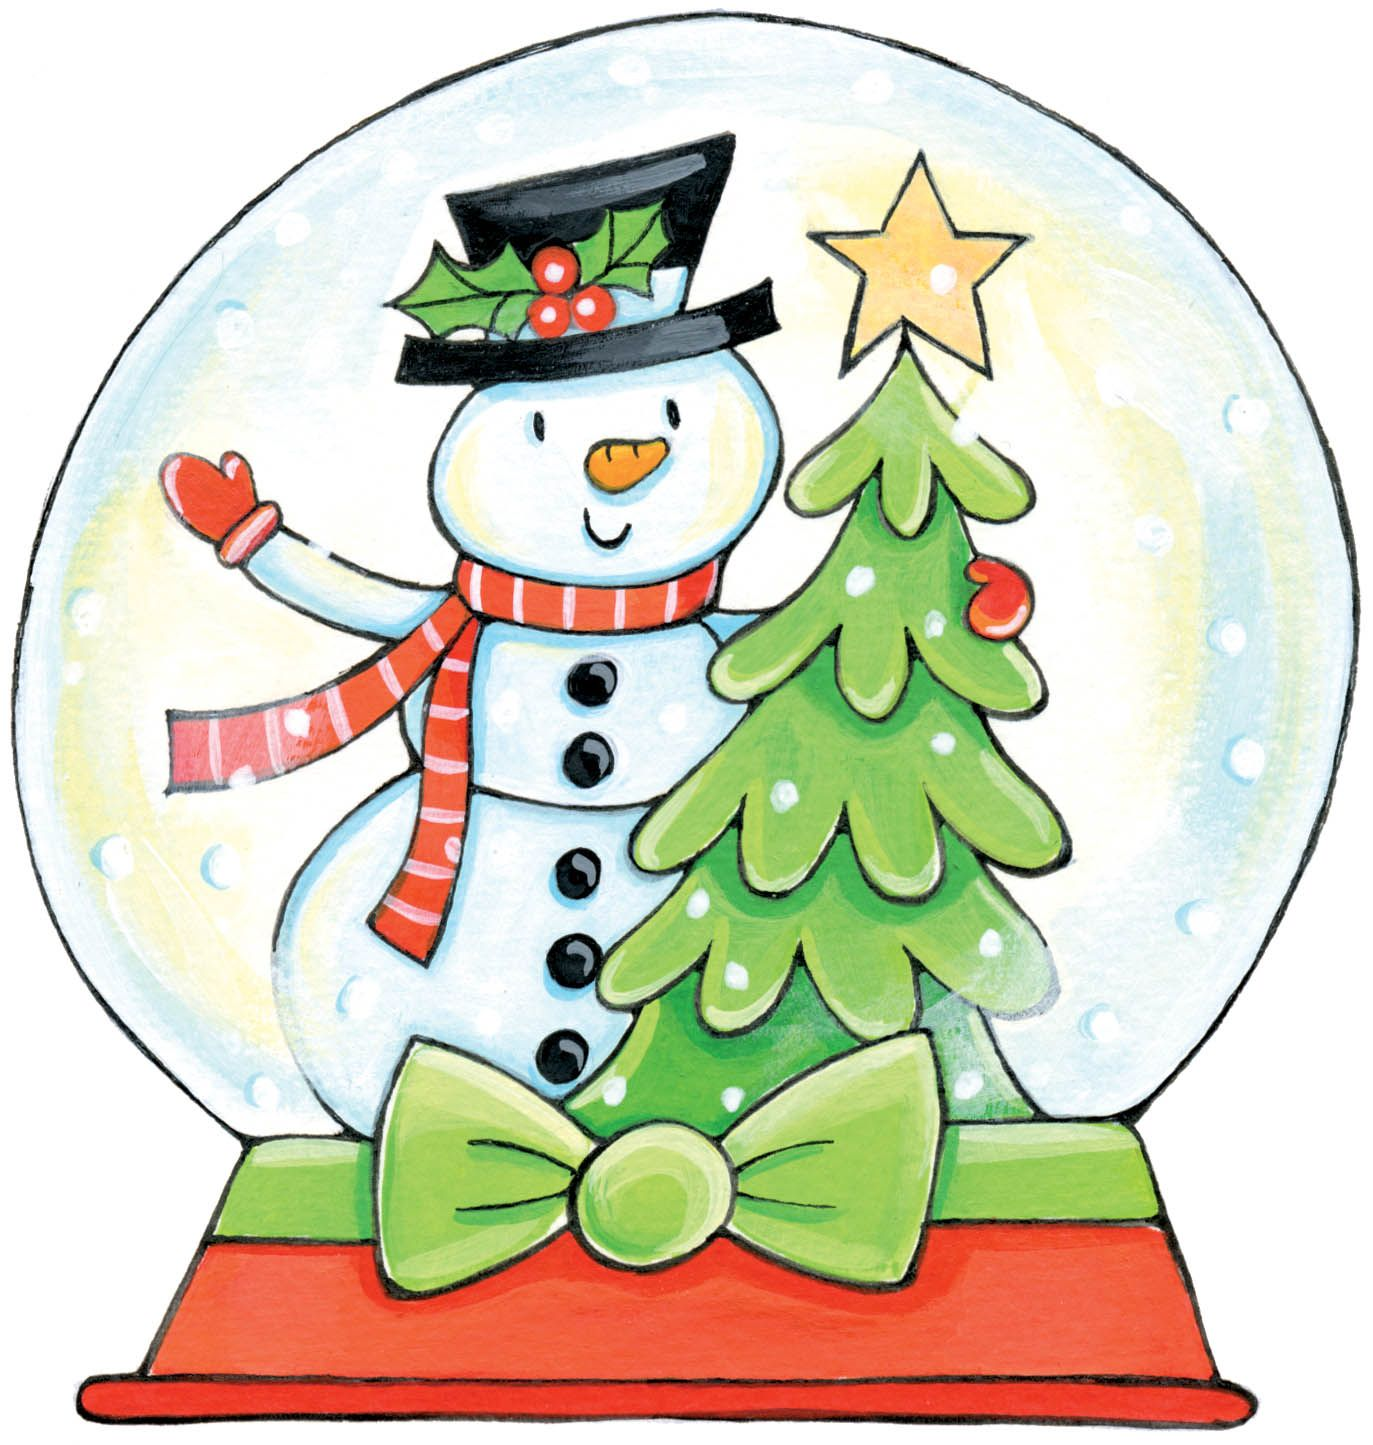 snow globe animated clip art christmas snow globes clip art snow rh pinterest com christmas animated clipart free download christmas animated clipart free download